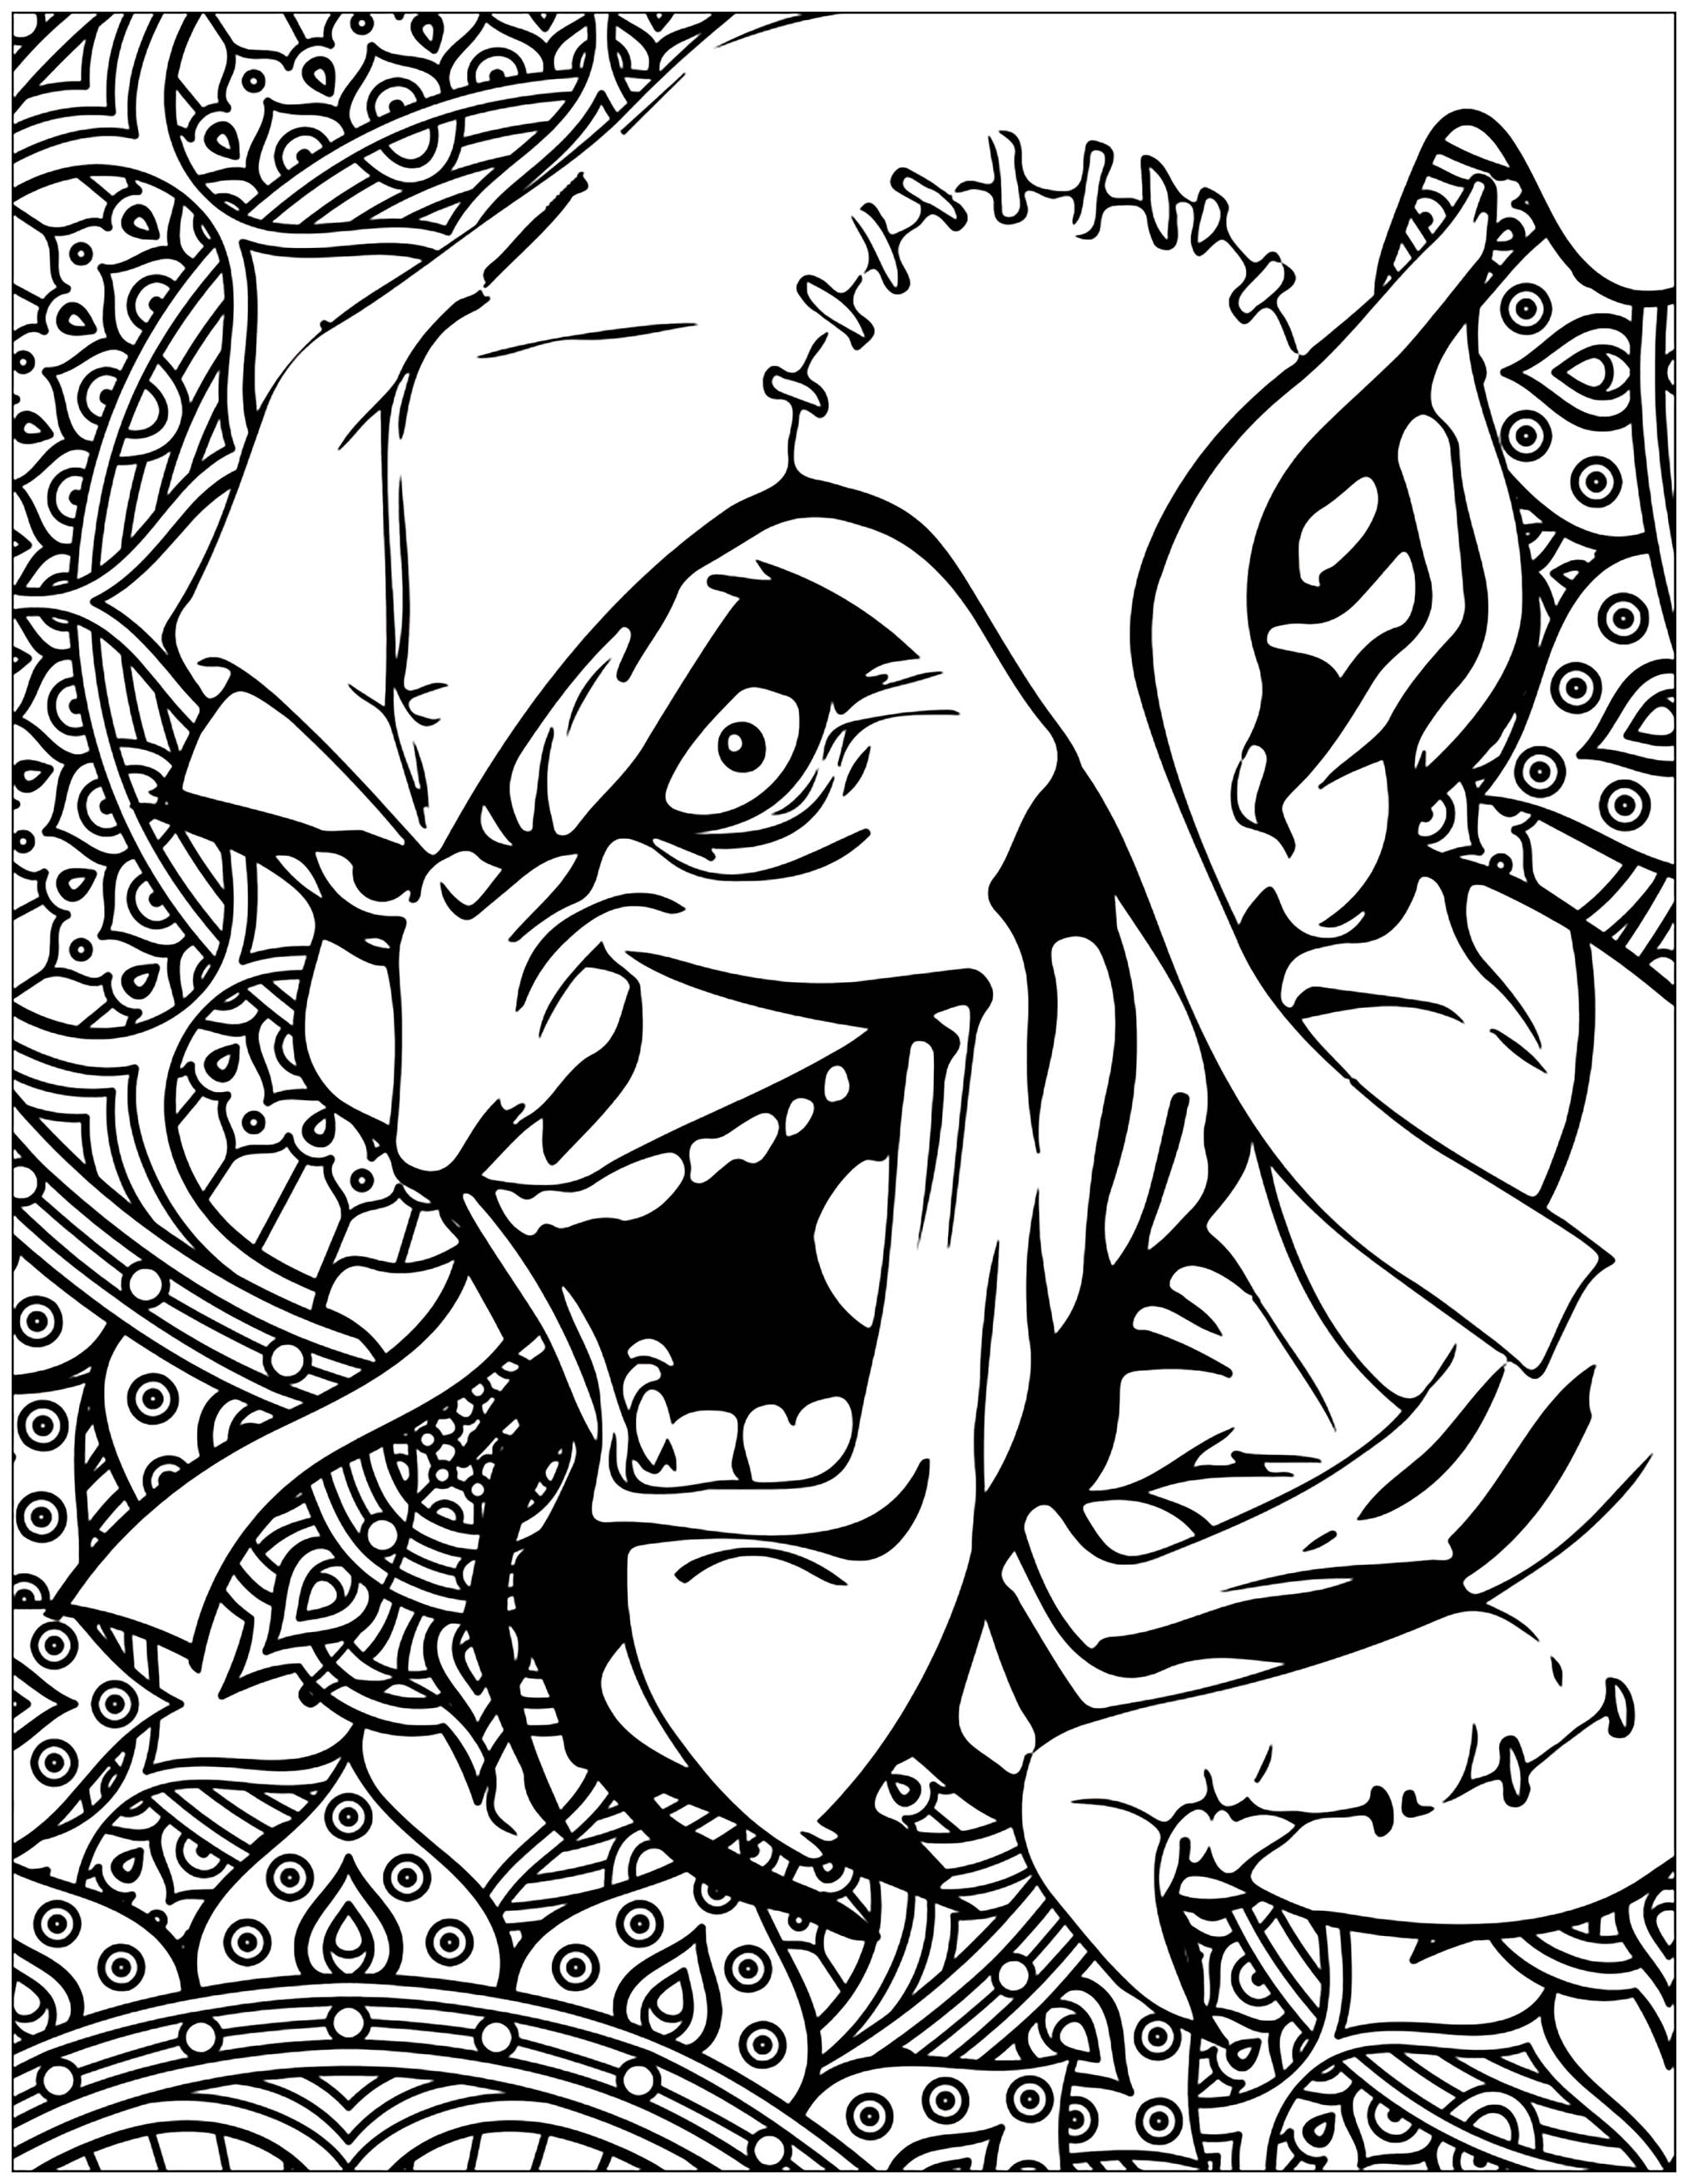 Coloring Book Drawing at GetDrawings.com | Free for personal use ...